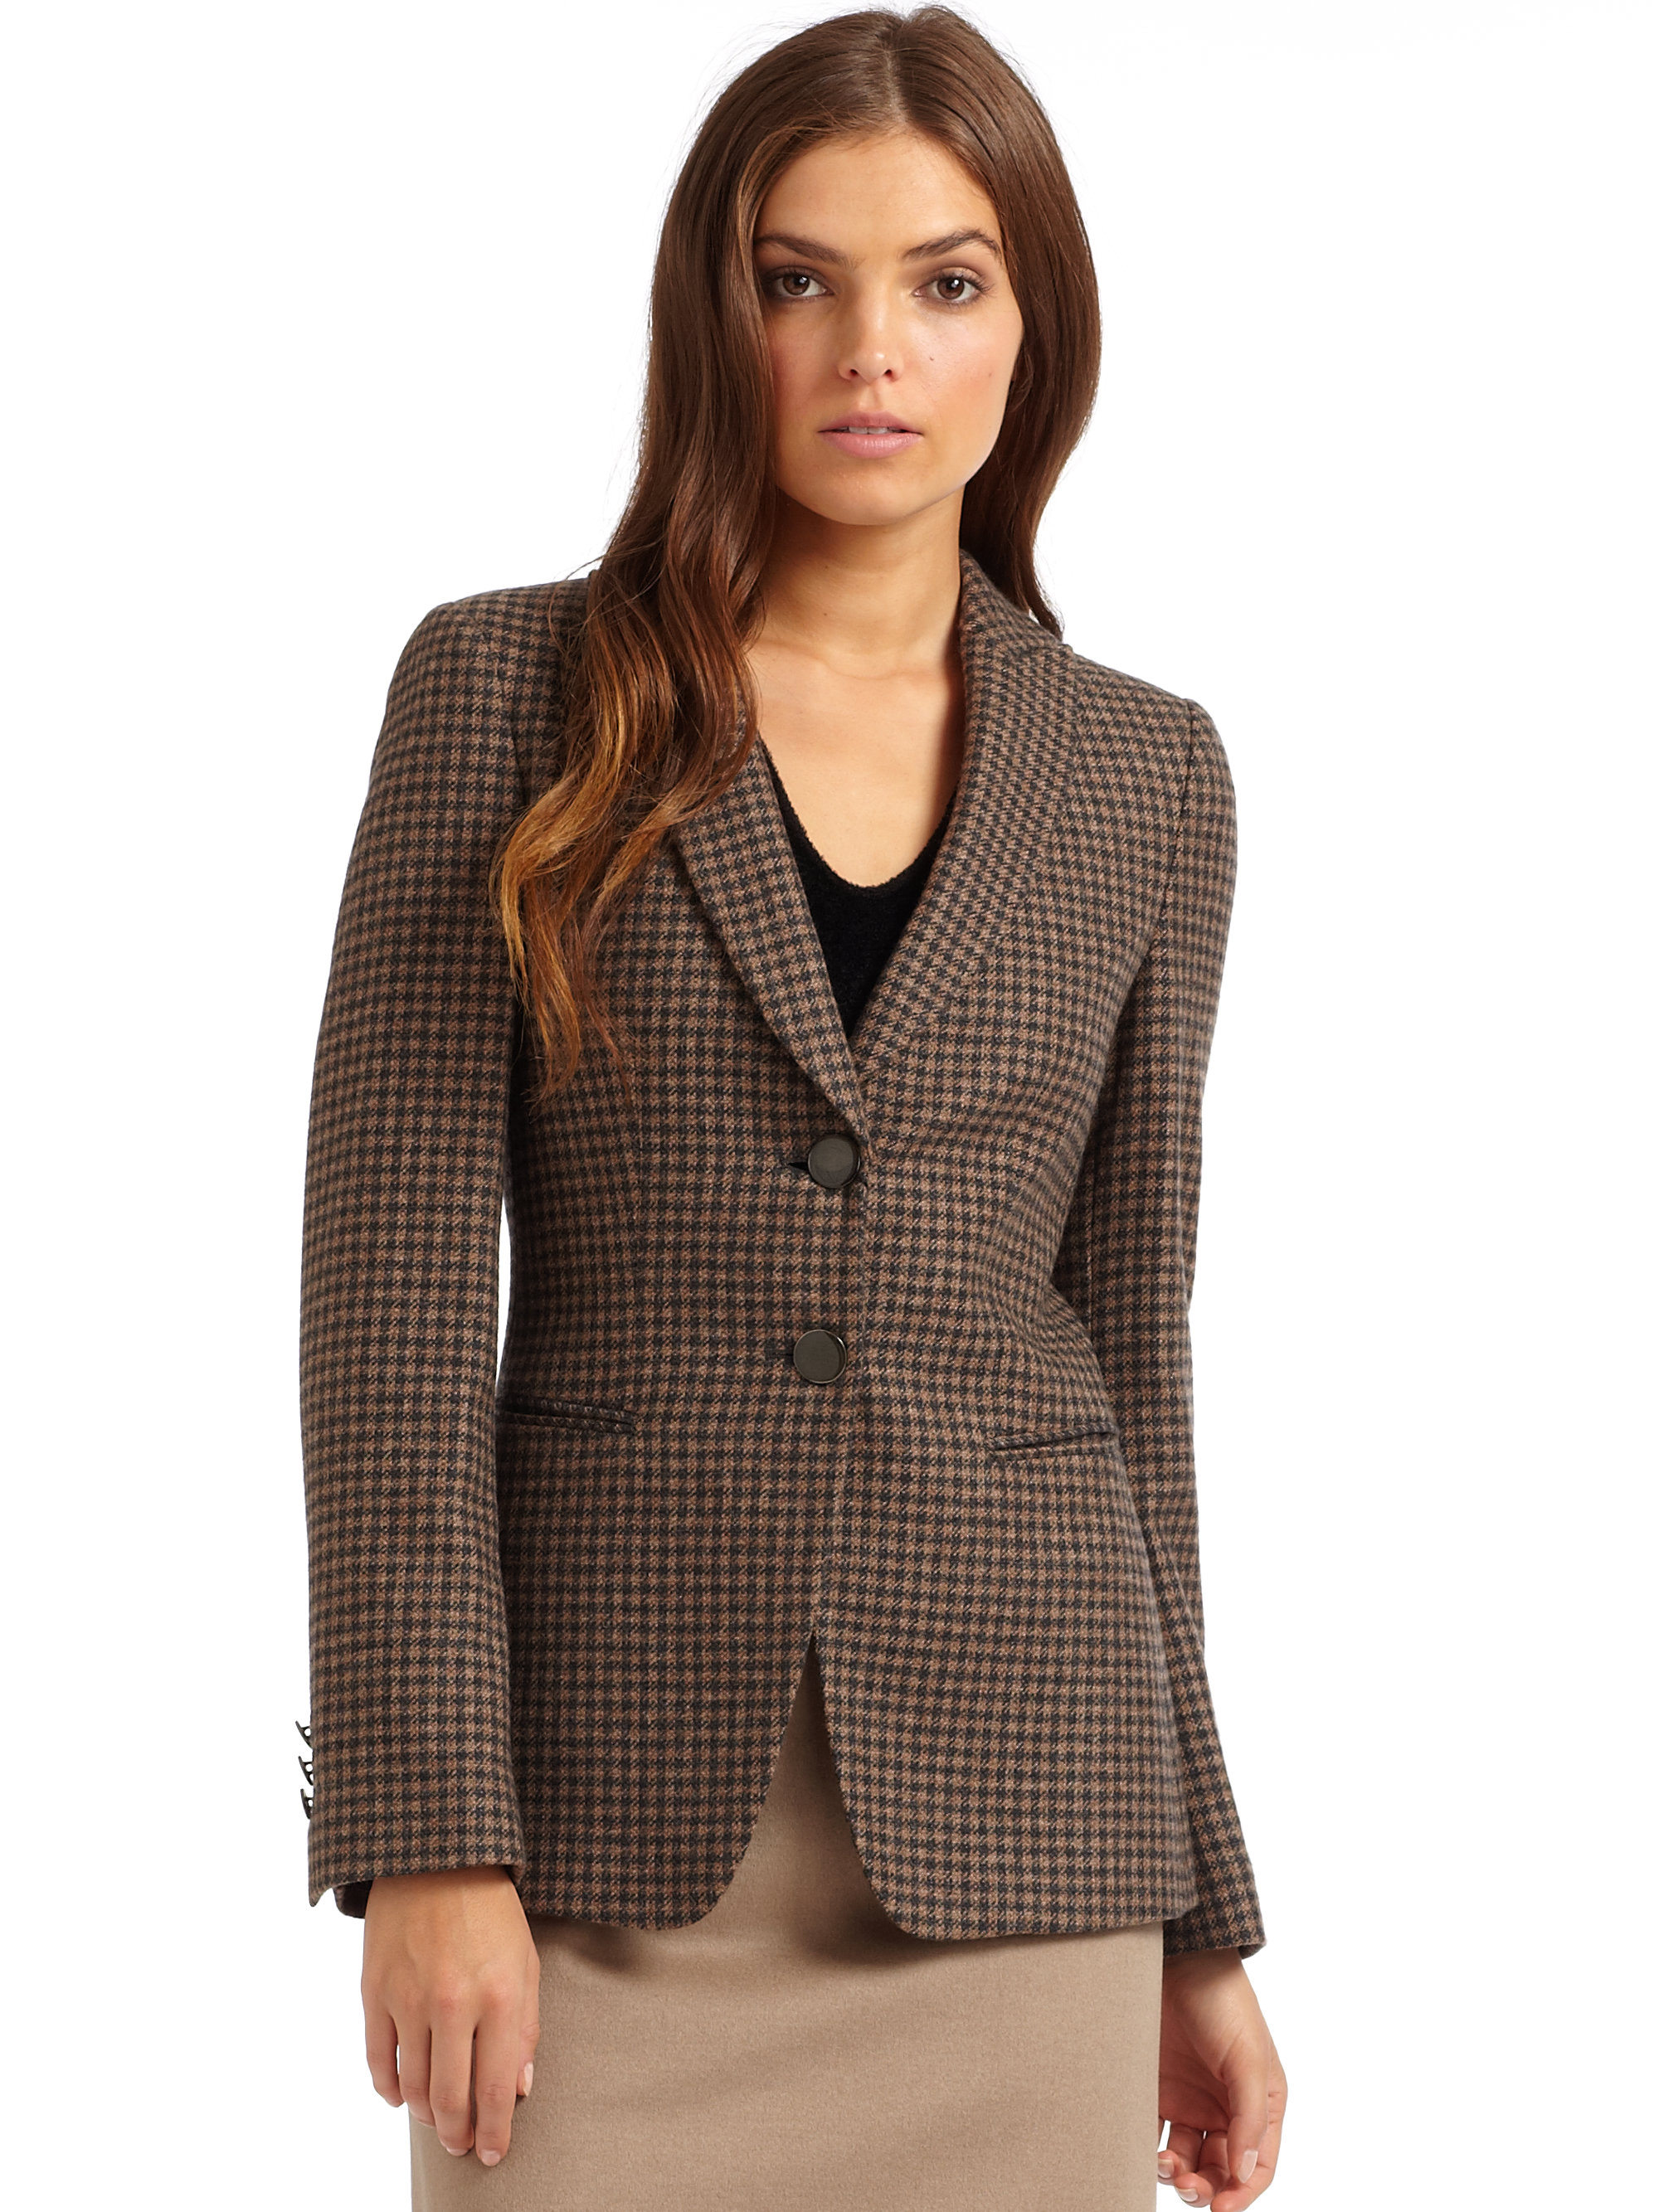 Giorgio armani Cashmere Houndstooth Jacket in Brown | Lyst